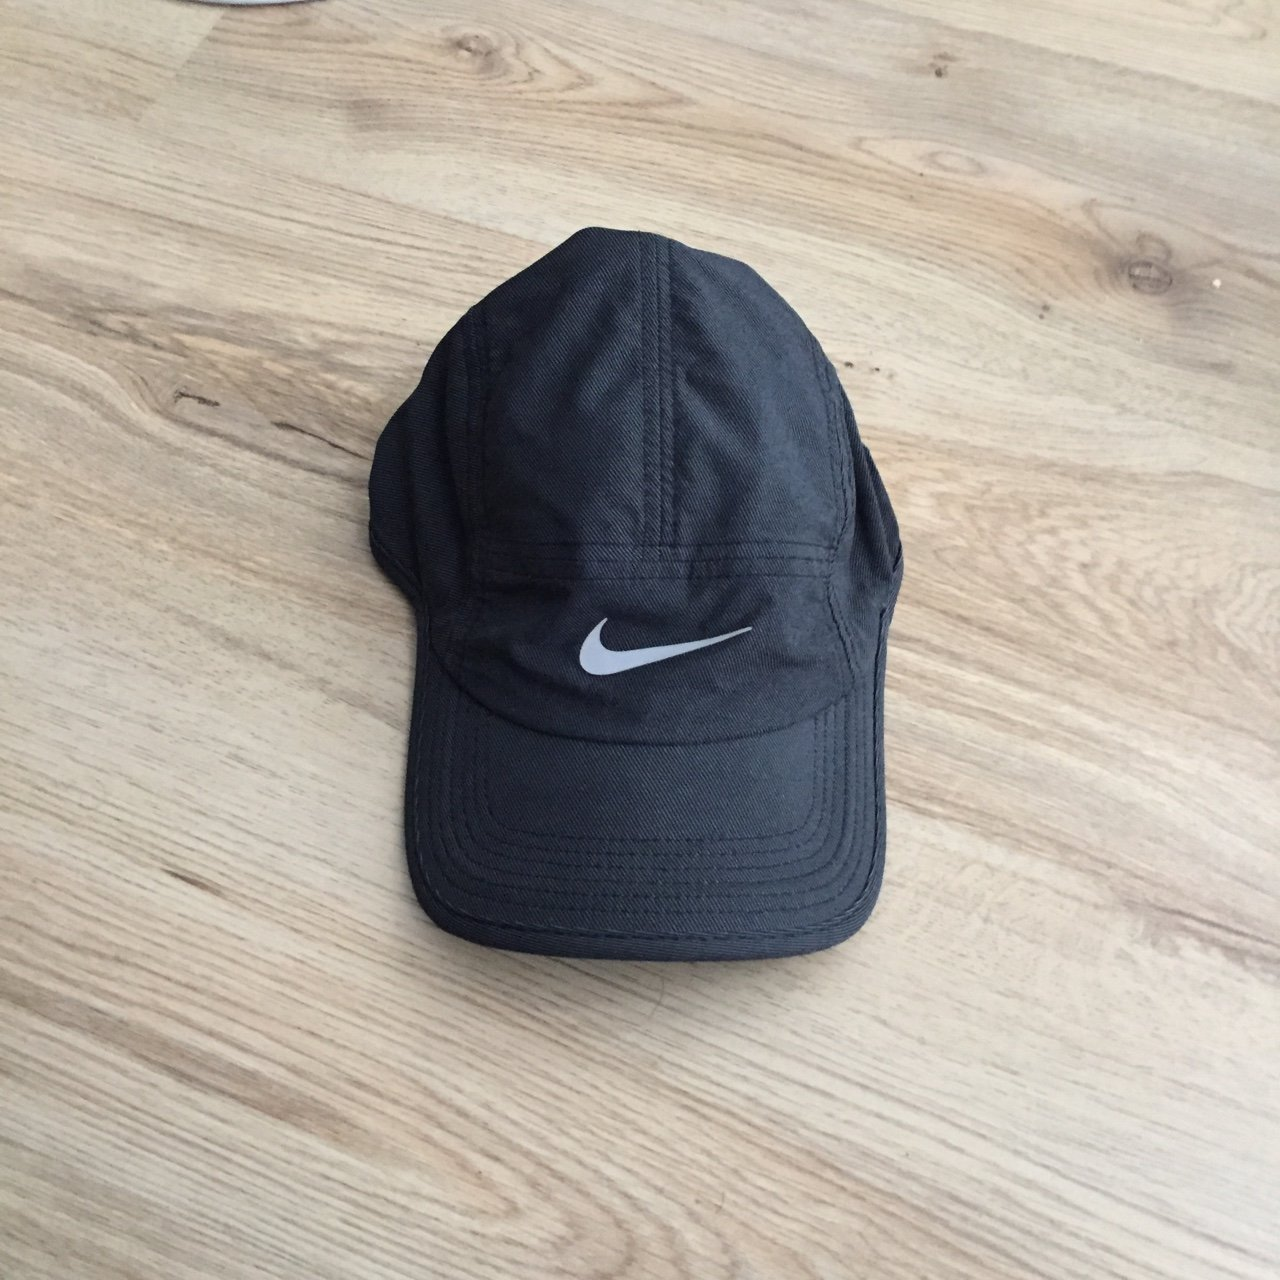 Nike reflective dri-fit hat running cap ( AW84 ) I bought a - Depop 2c50bfc4f58